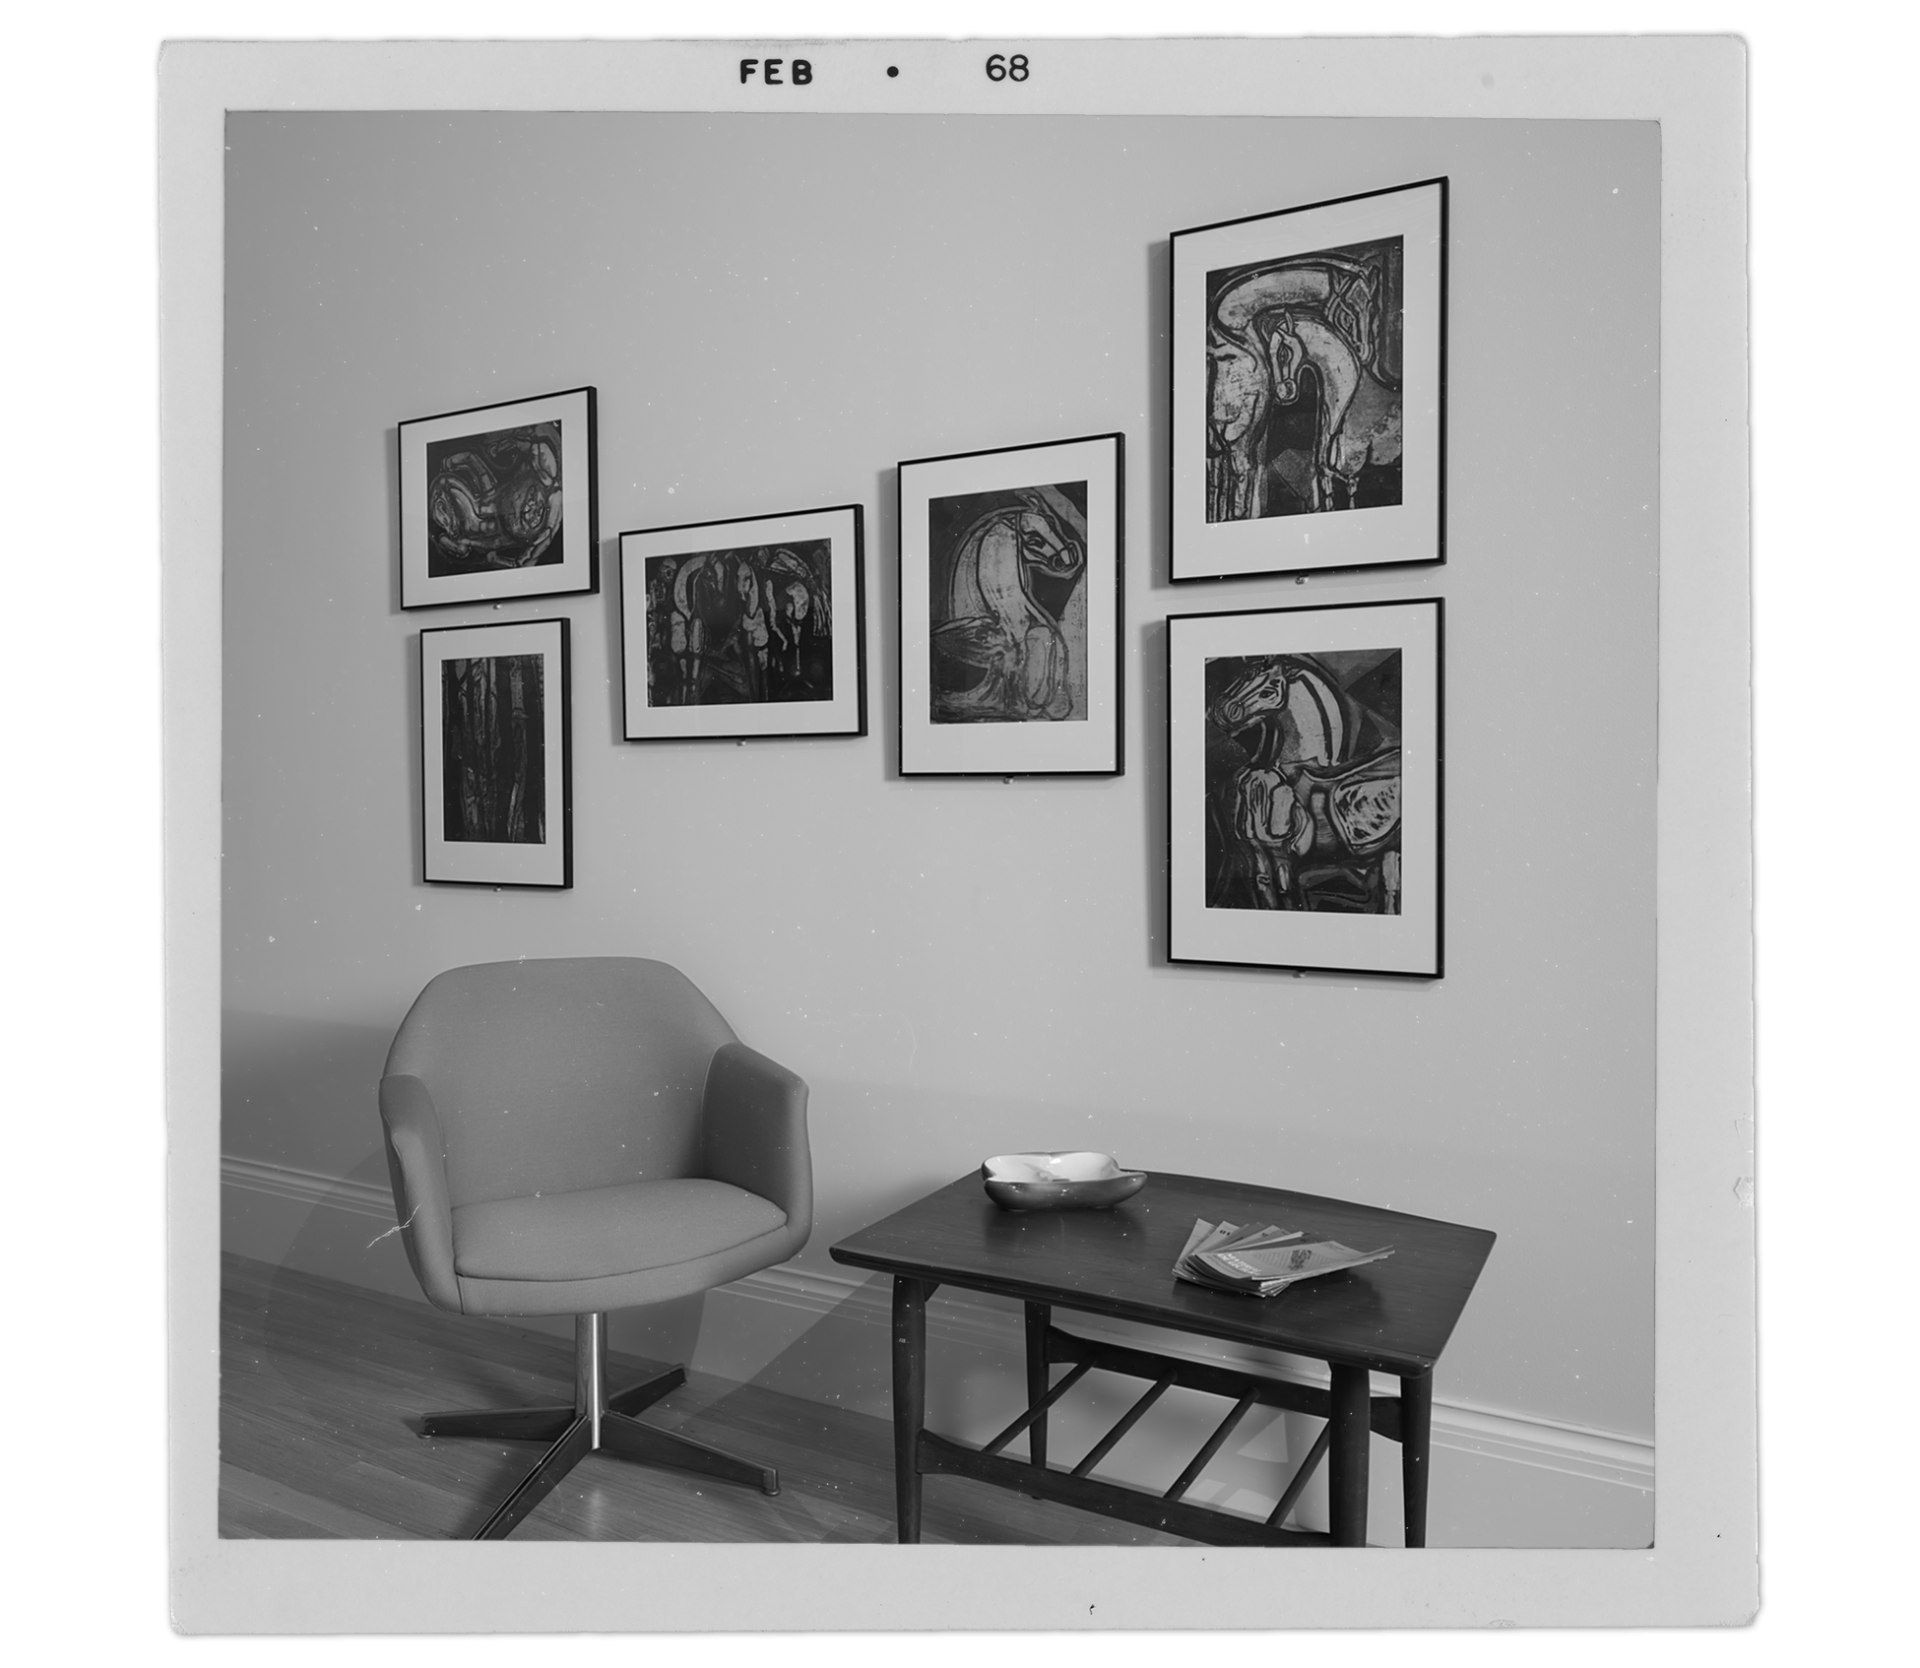 """Old"" photograph of six Delia del Carril prints hanging on a wall above a midcentury chair and table"